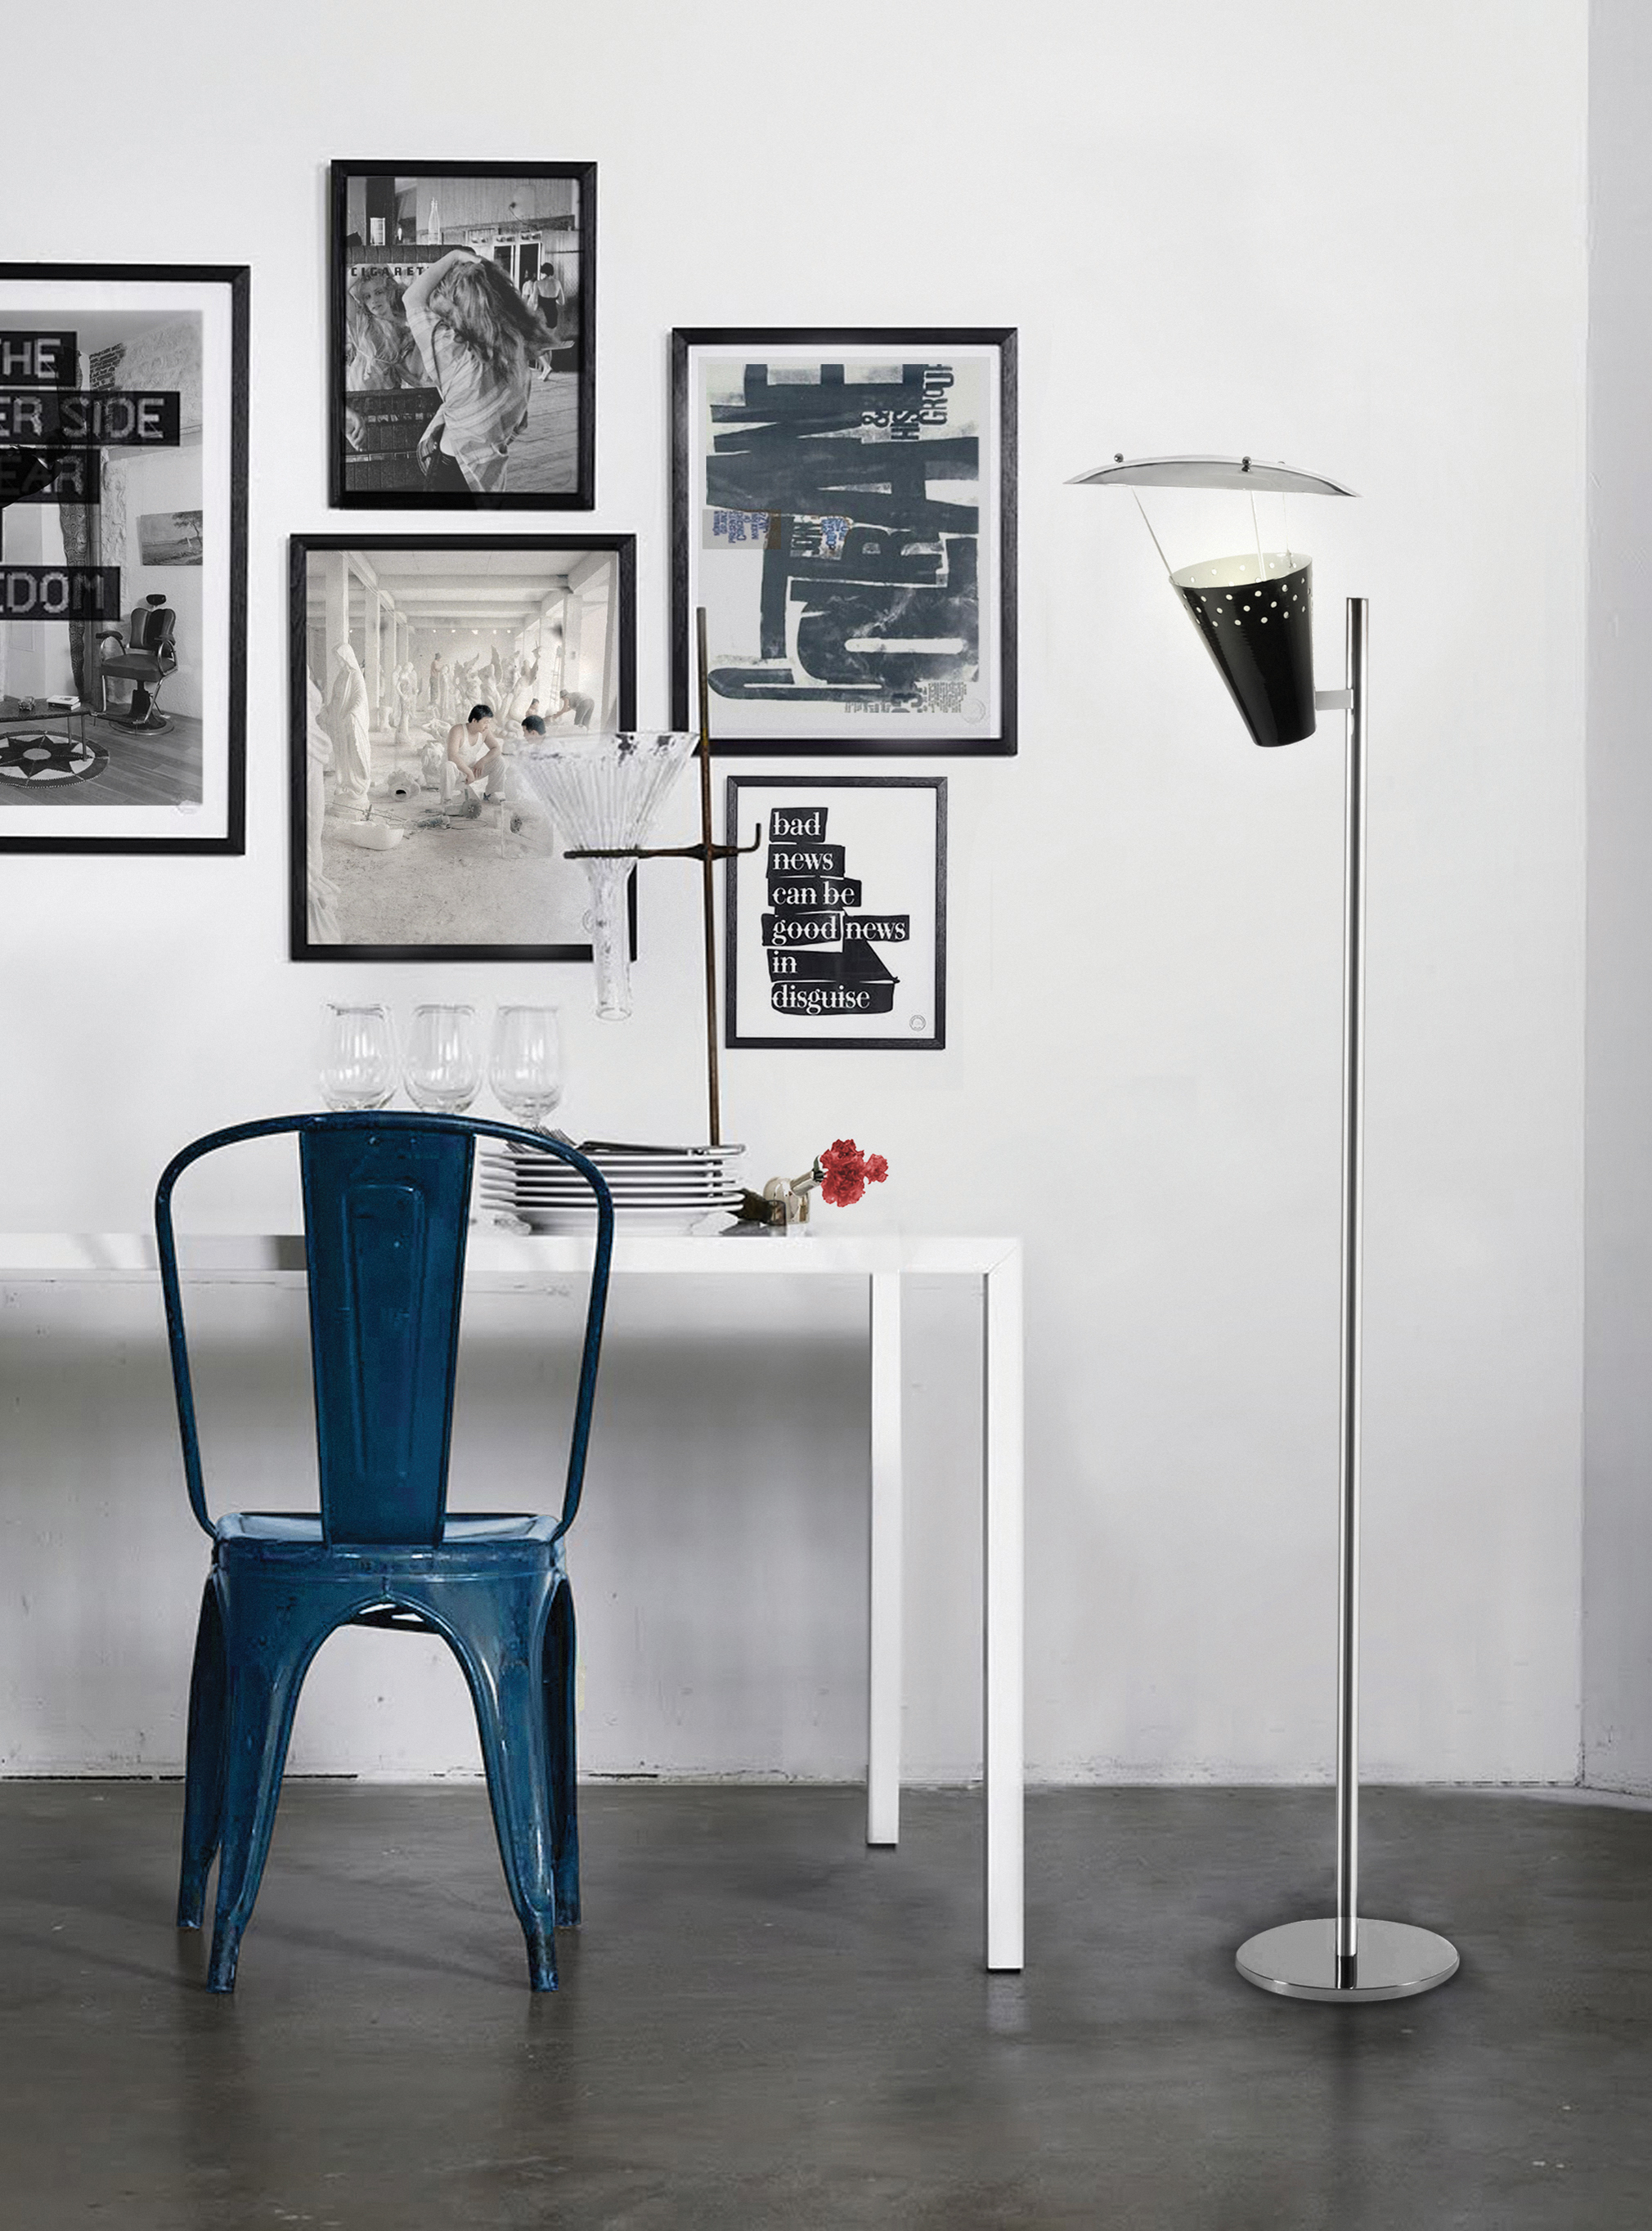 How We Found That Modern Floor Lamps are The Best Lighting Designs 7 modern floor lamps How We Found That Modern Floor Lamps are The Best Lighting Designs How We Found That Modern Floor Lamps are The Best Lighting Designs 7